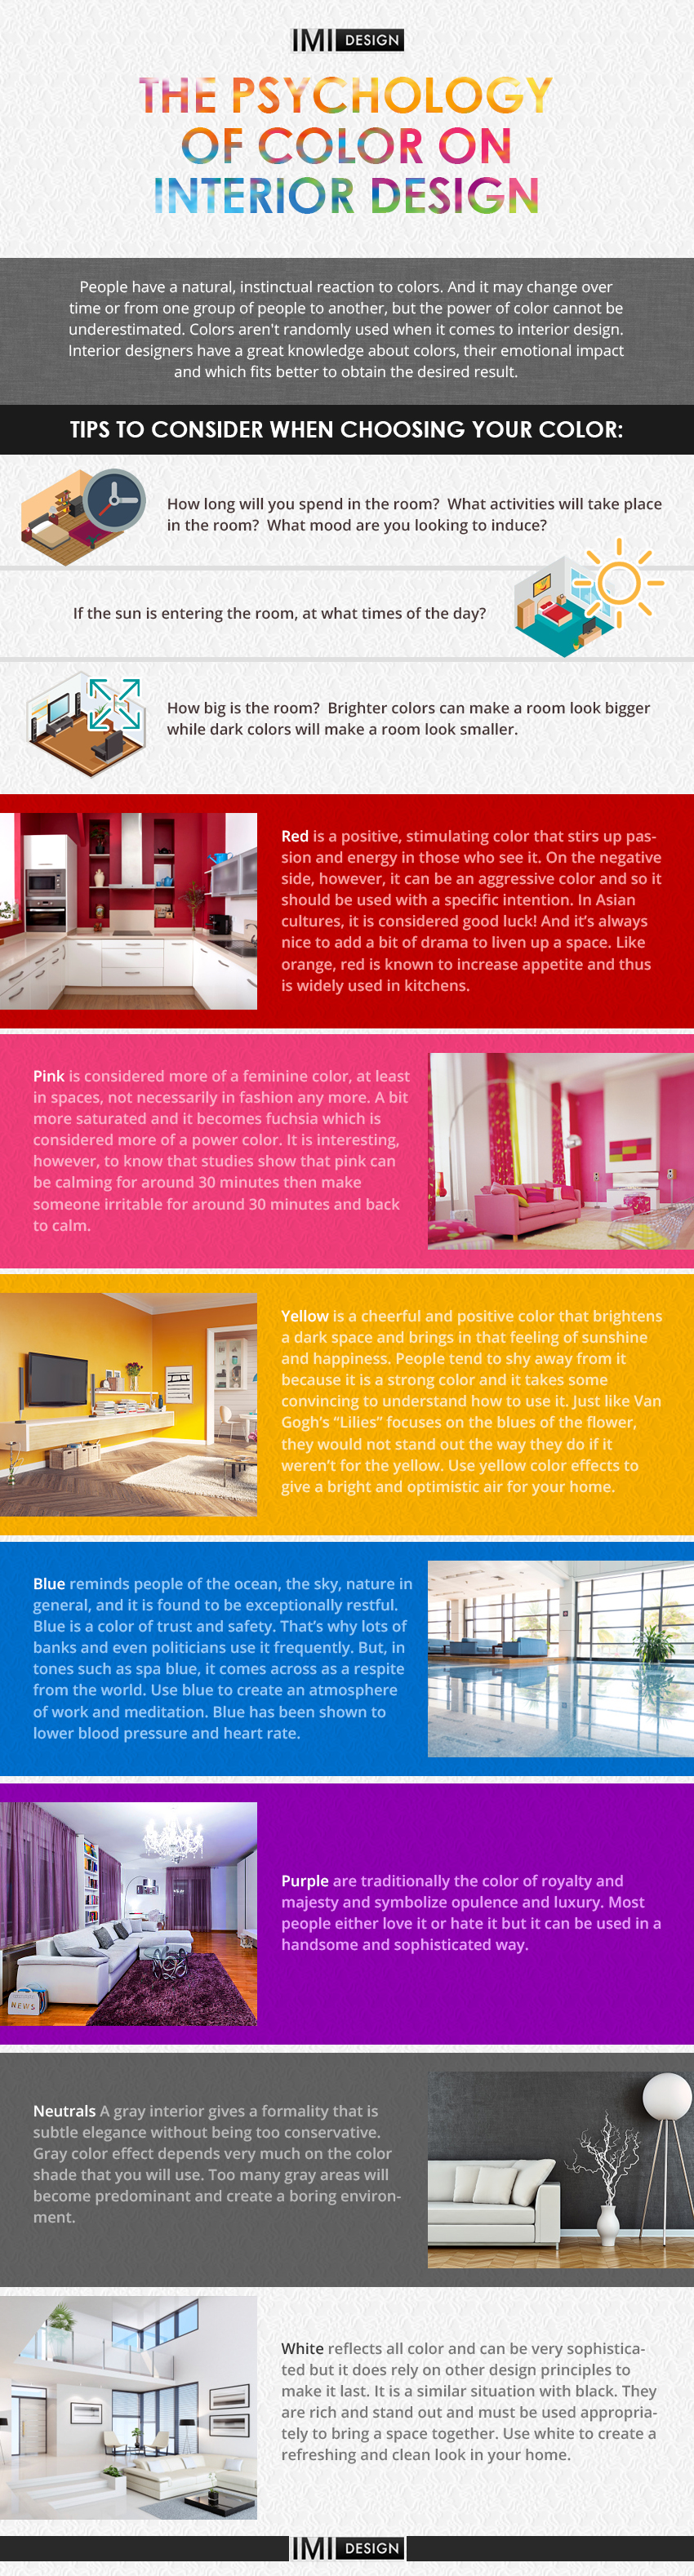 The Psychology of Color on Interior Design Infographic